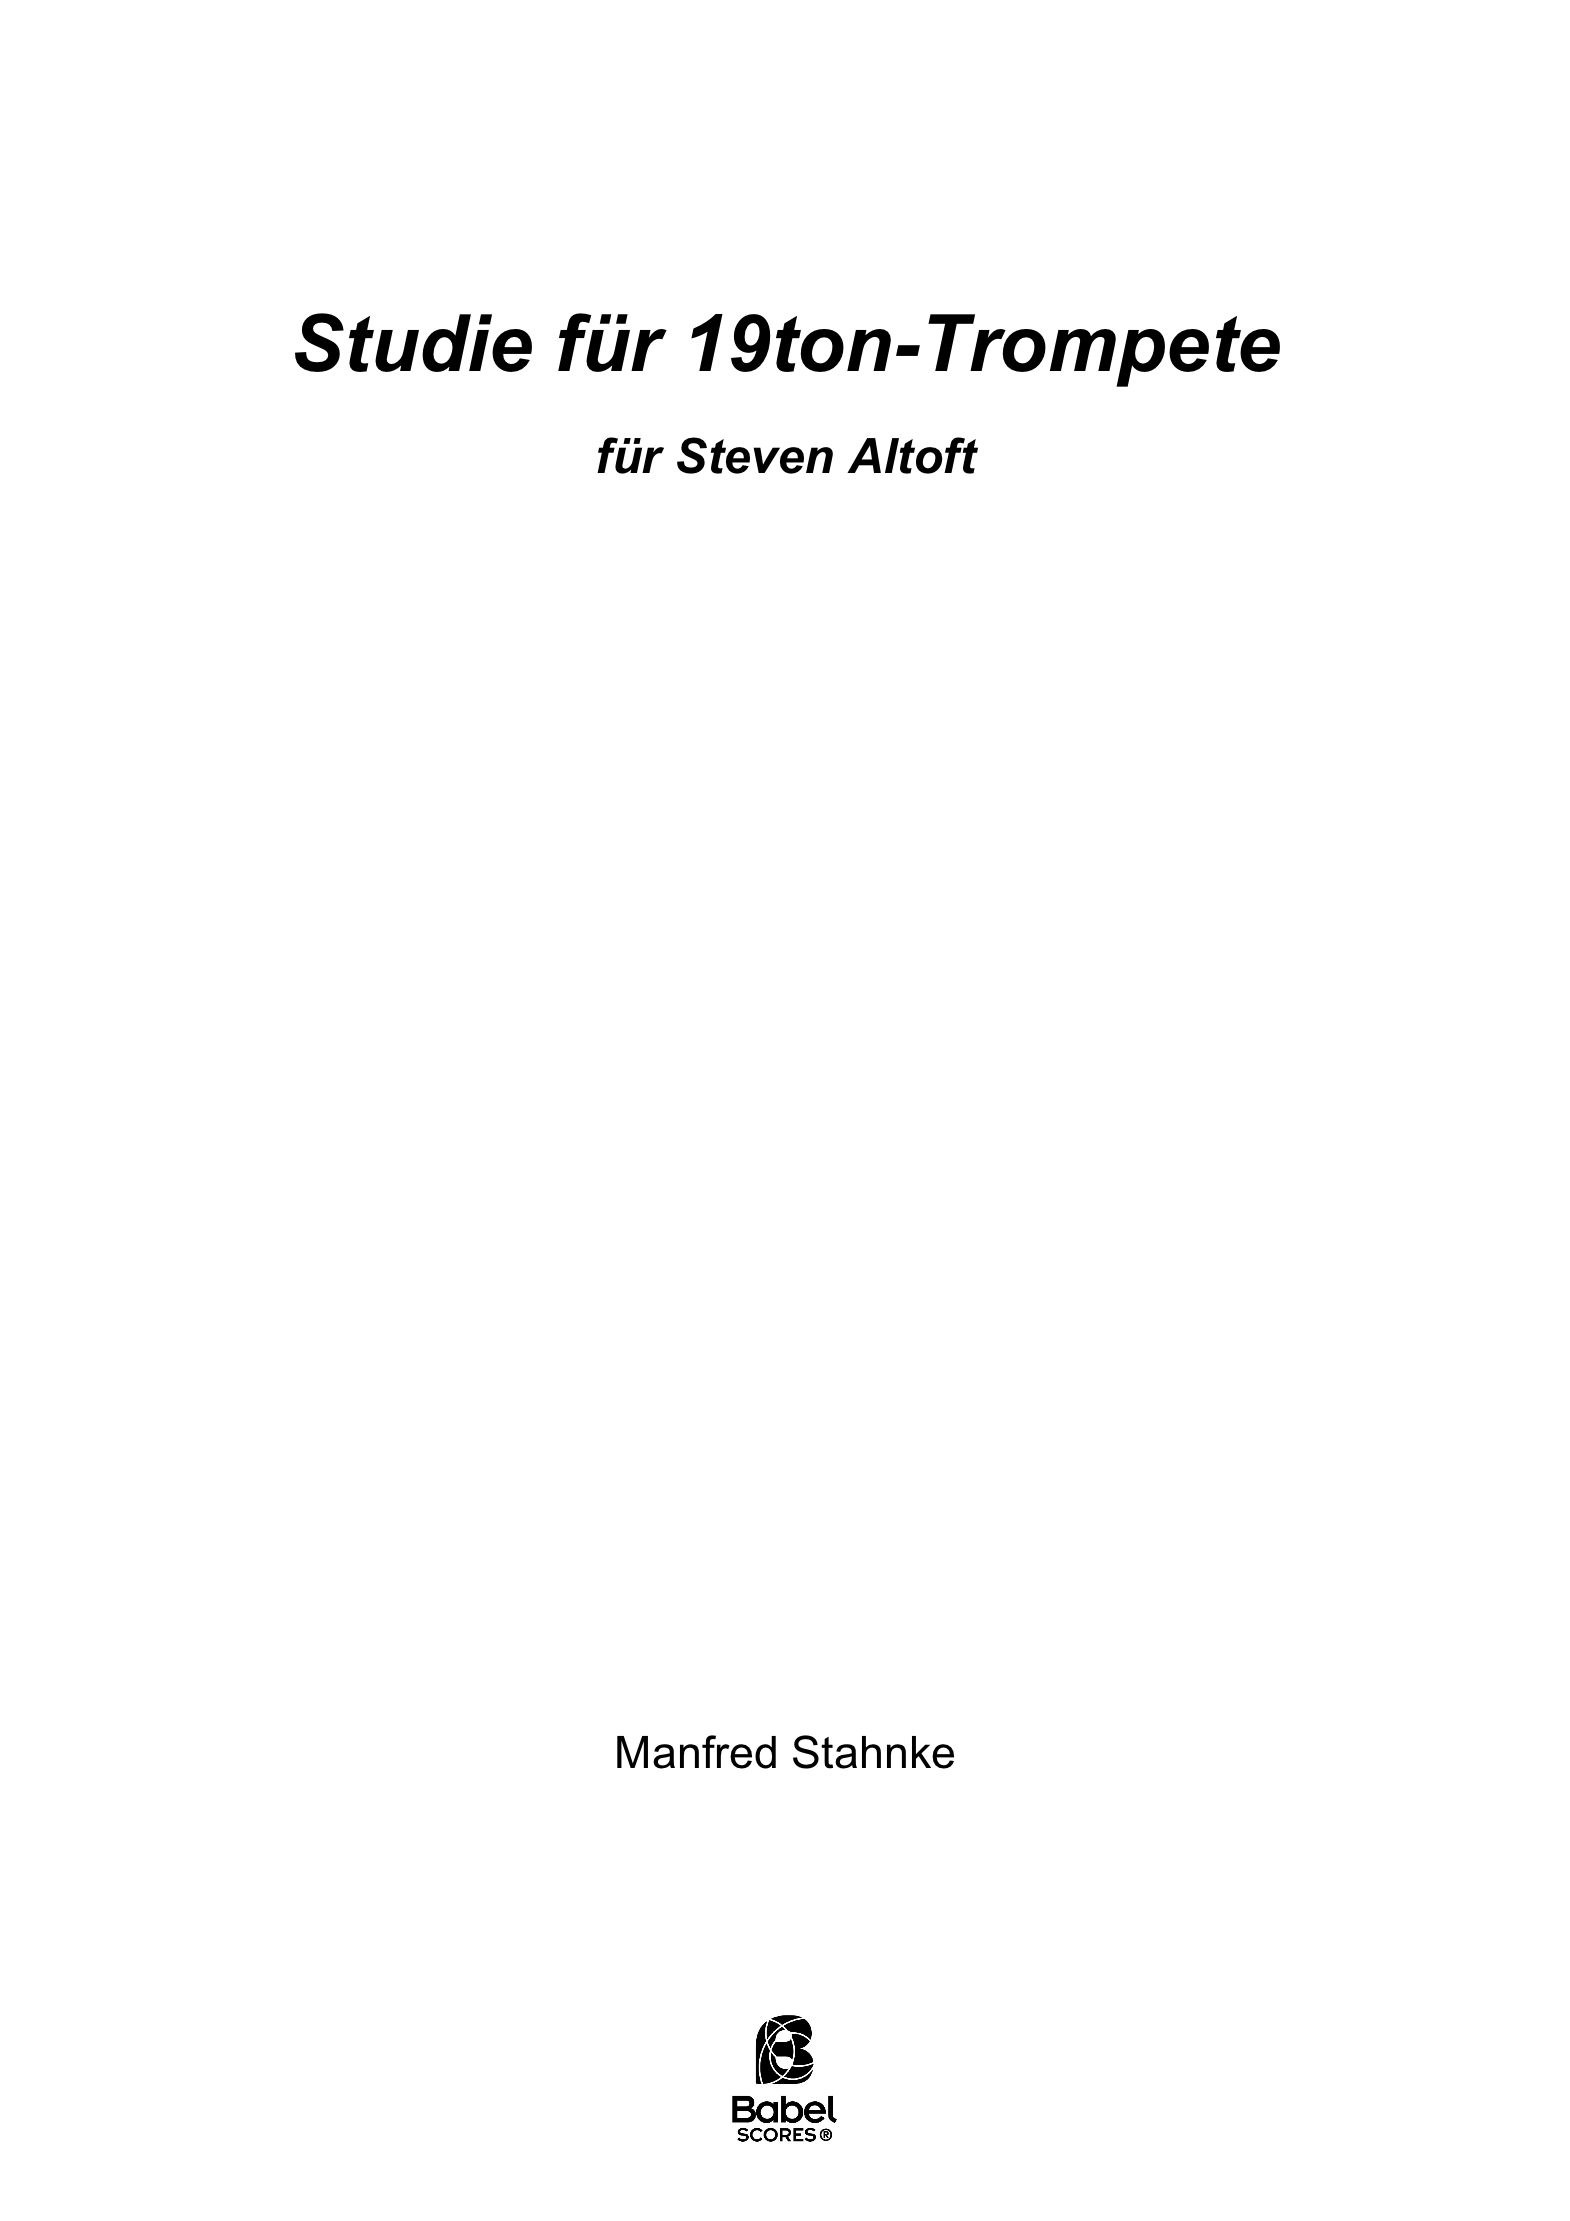 study for 19tone trumpet A4 z 2 263 1 923